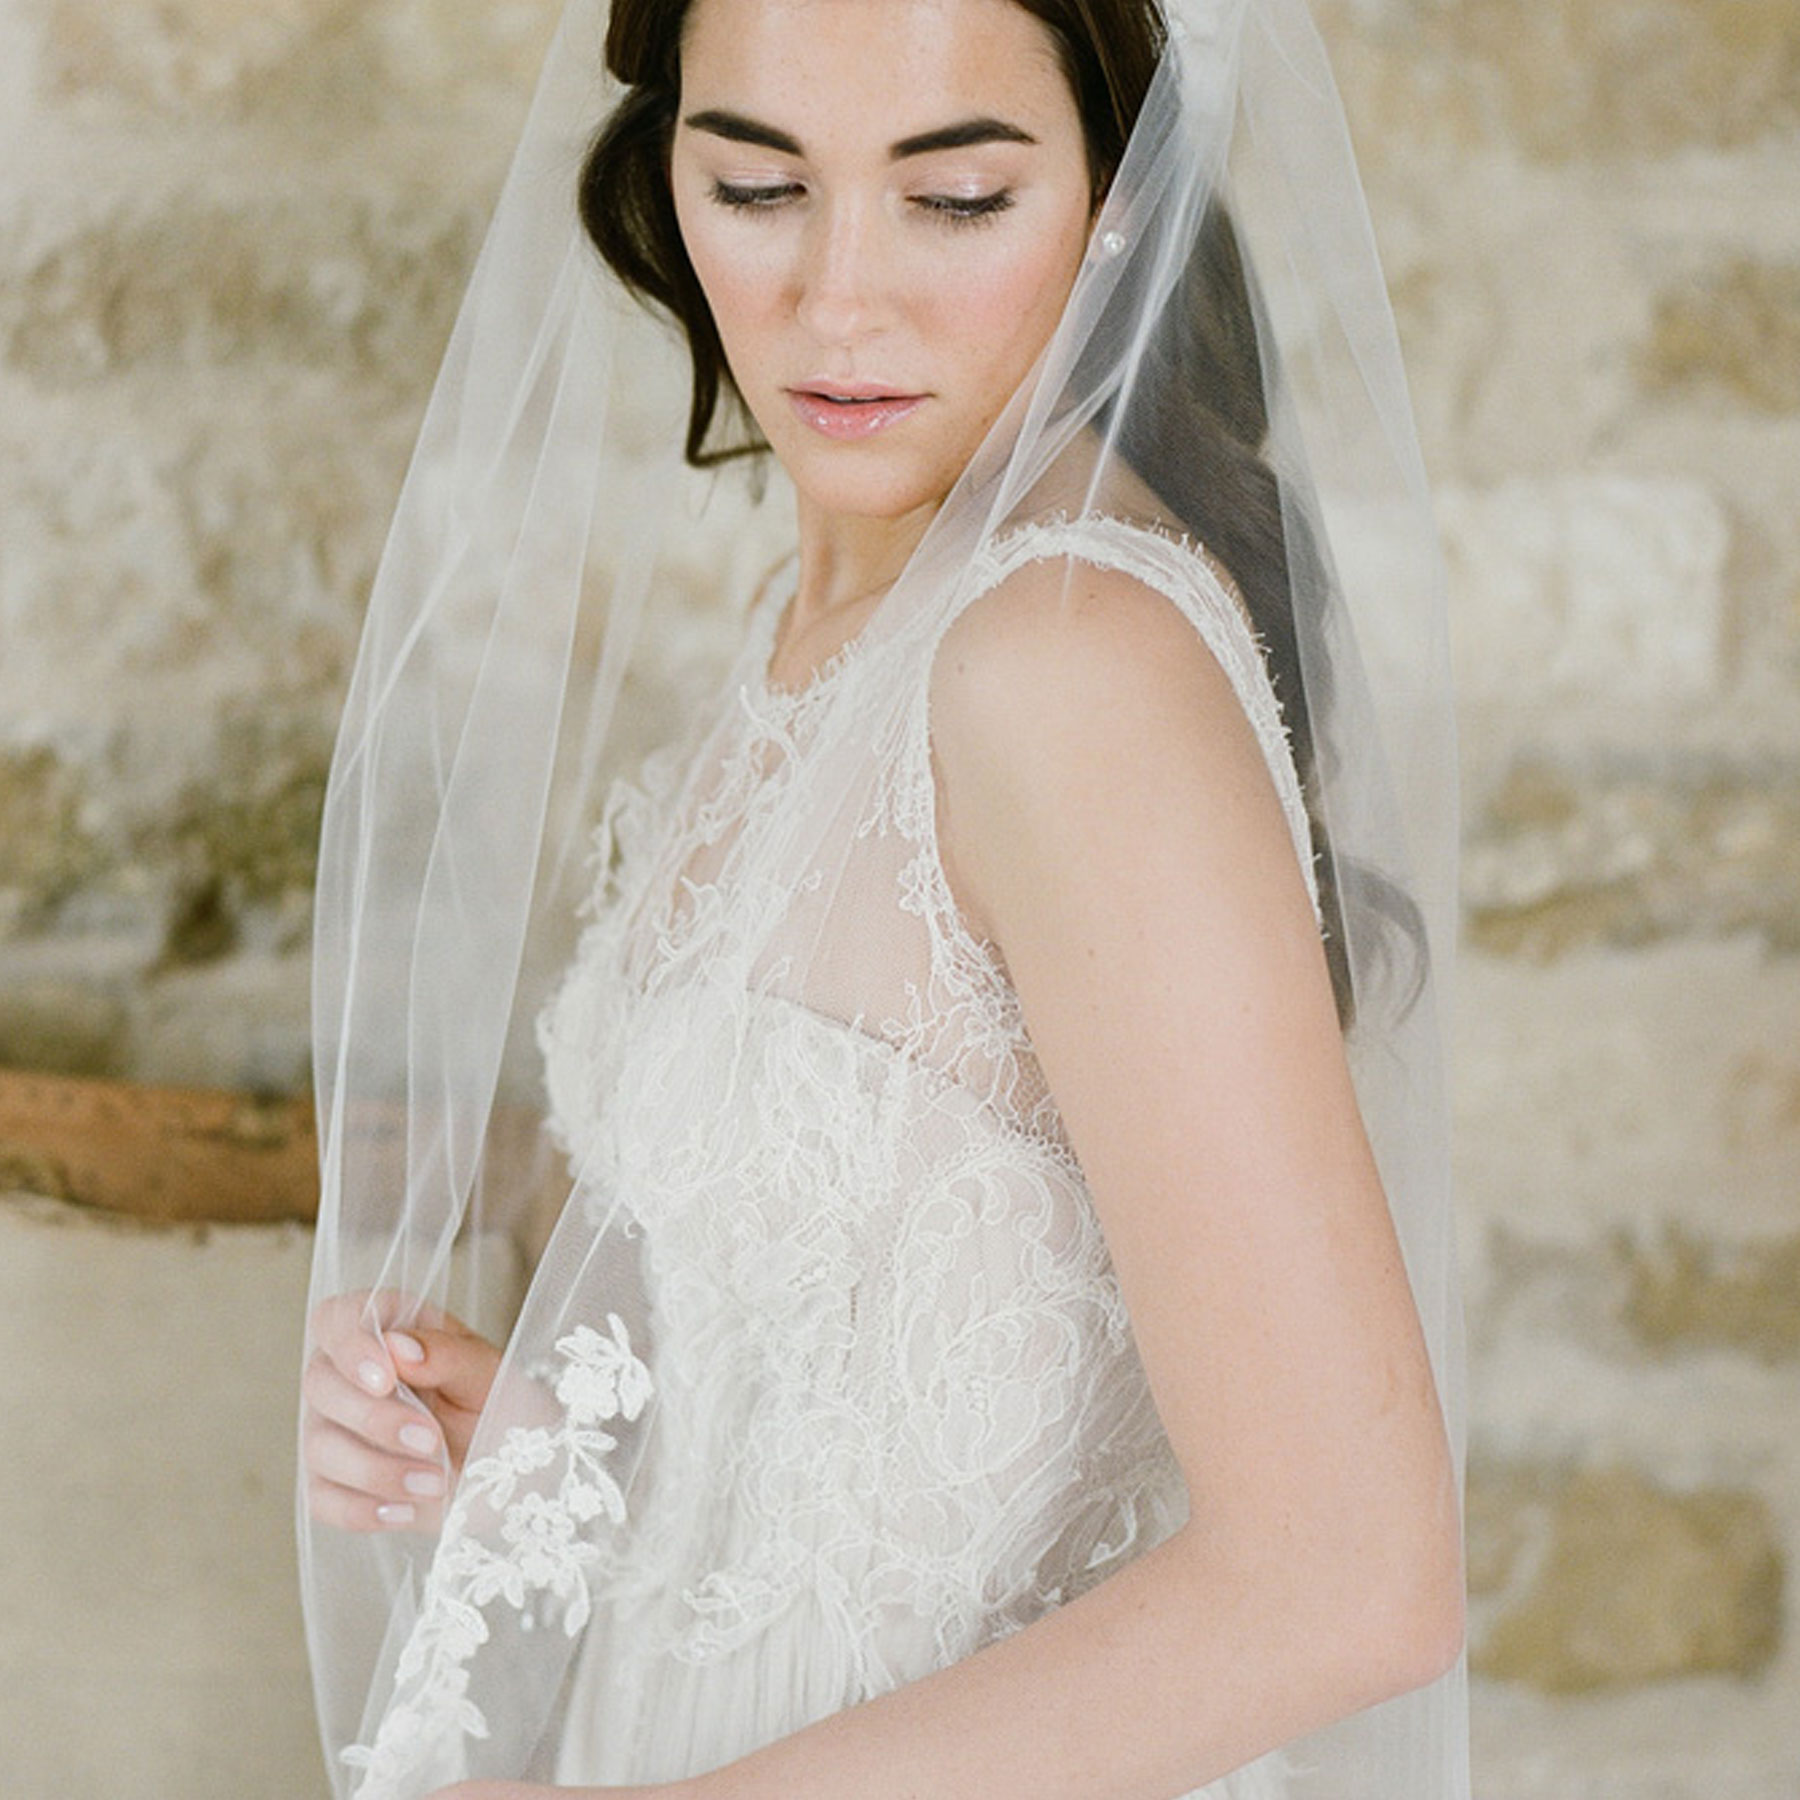 V7159-Bel-Aire-Bridal-KT-Merry-Photography-